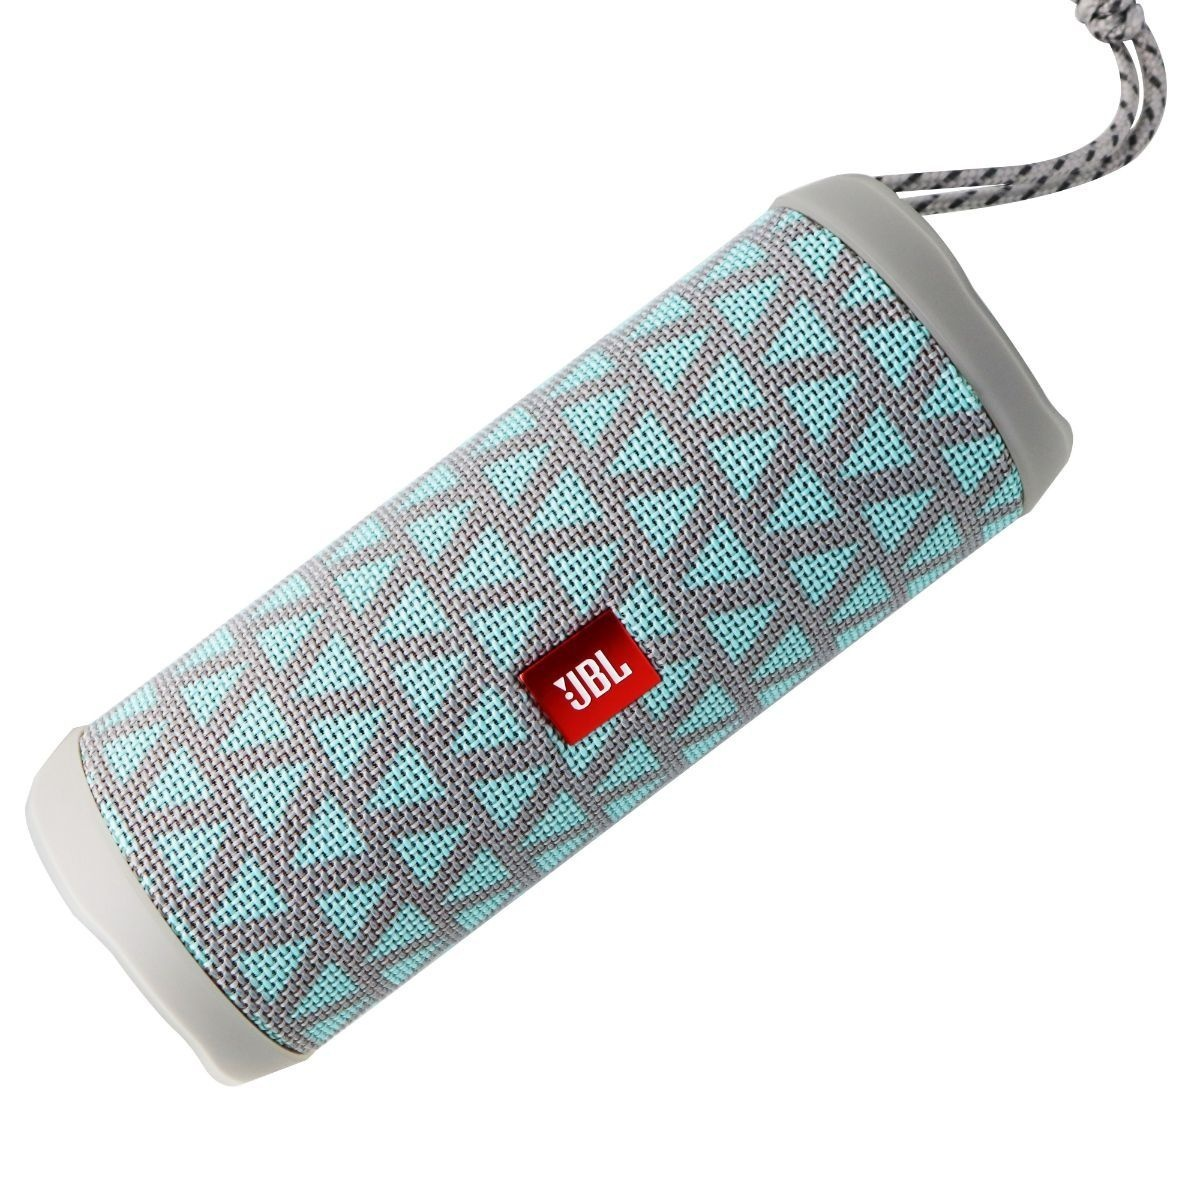 JBL by Harman Flip 4 Wireless Bluetooth SplashProof Portable Speaker - Gray/Teal